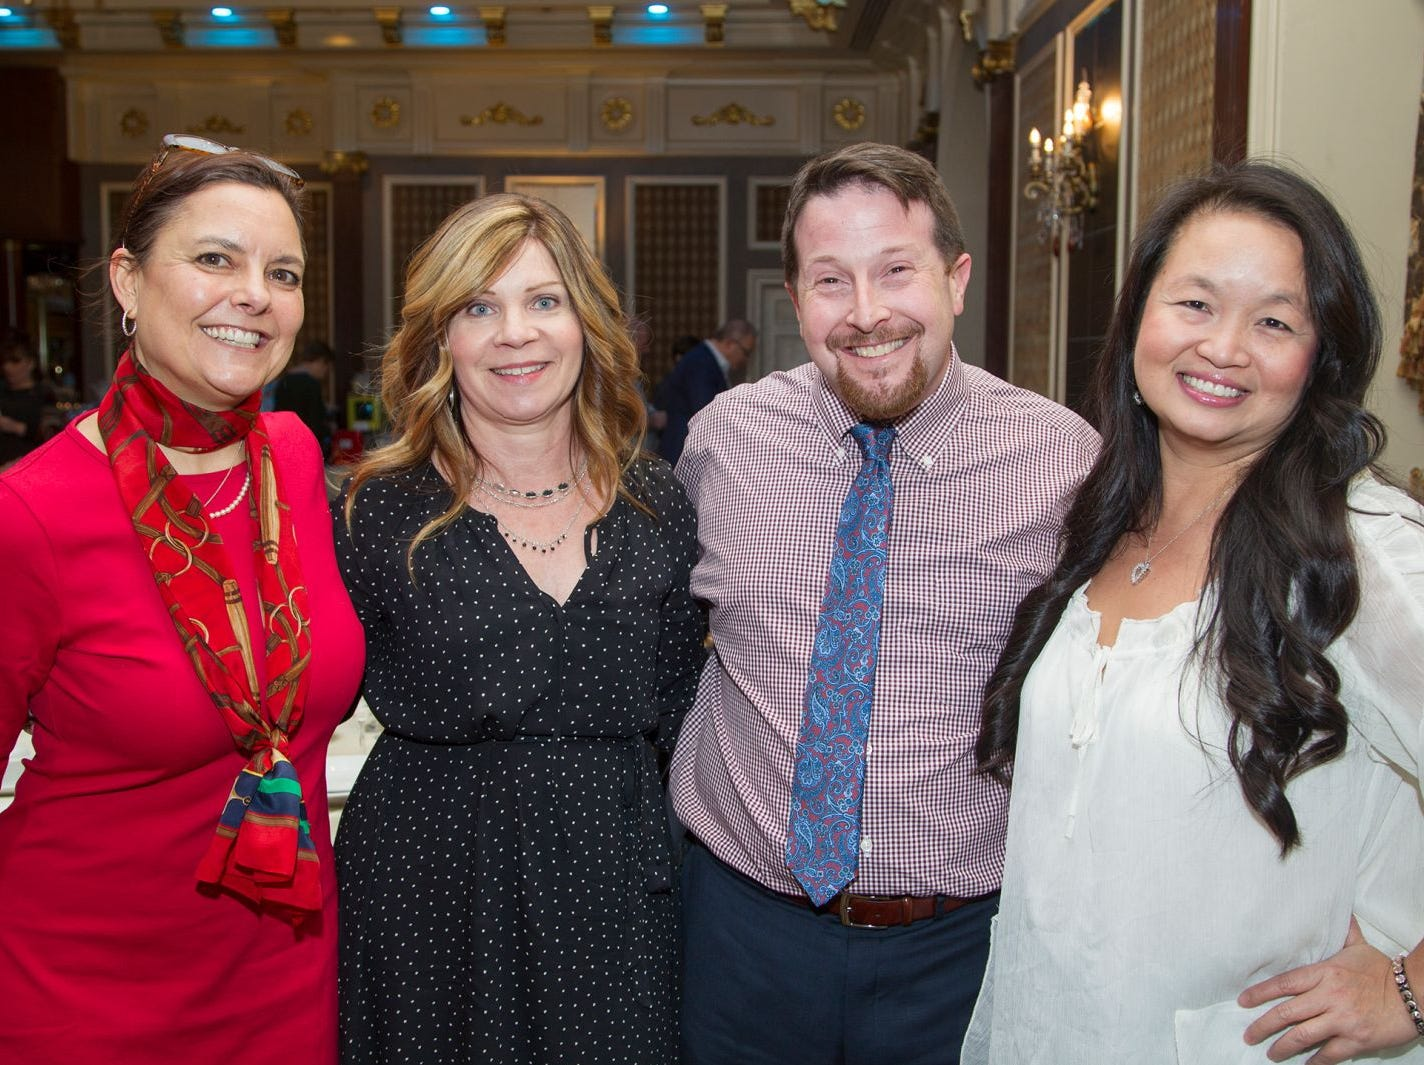 Executive Director Jennifer Brady, Tracey Gerber, Steve Simon, Que Lam.  A Night at the Races hosted by OASIS at the Brownstone in Paterson. 2/7/2019